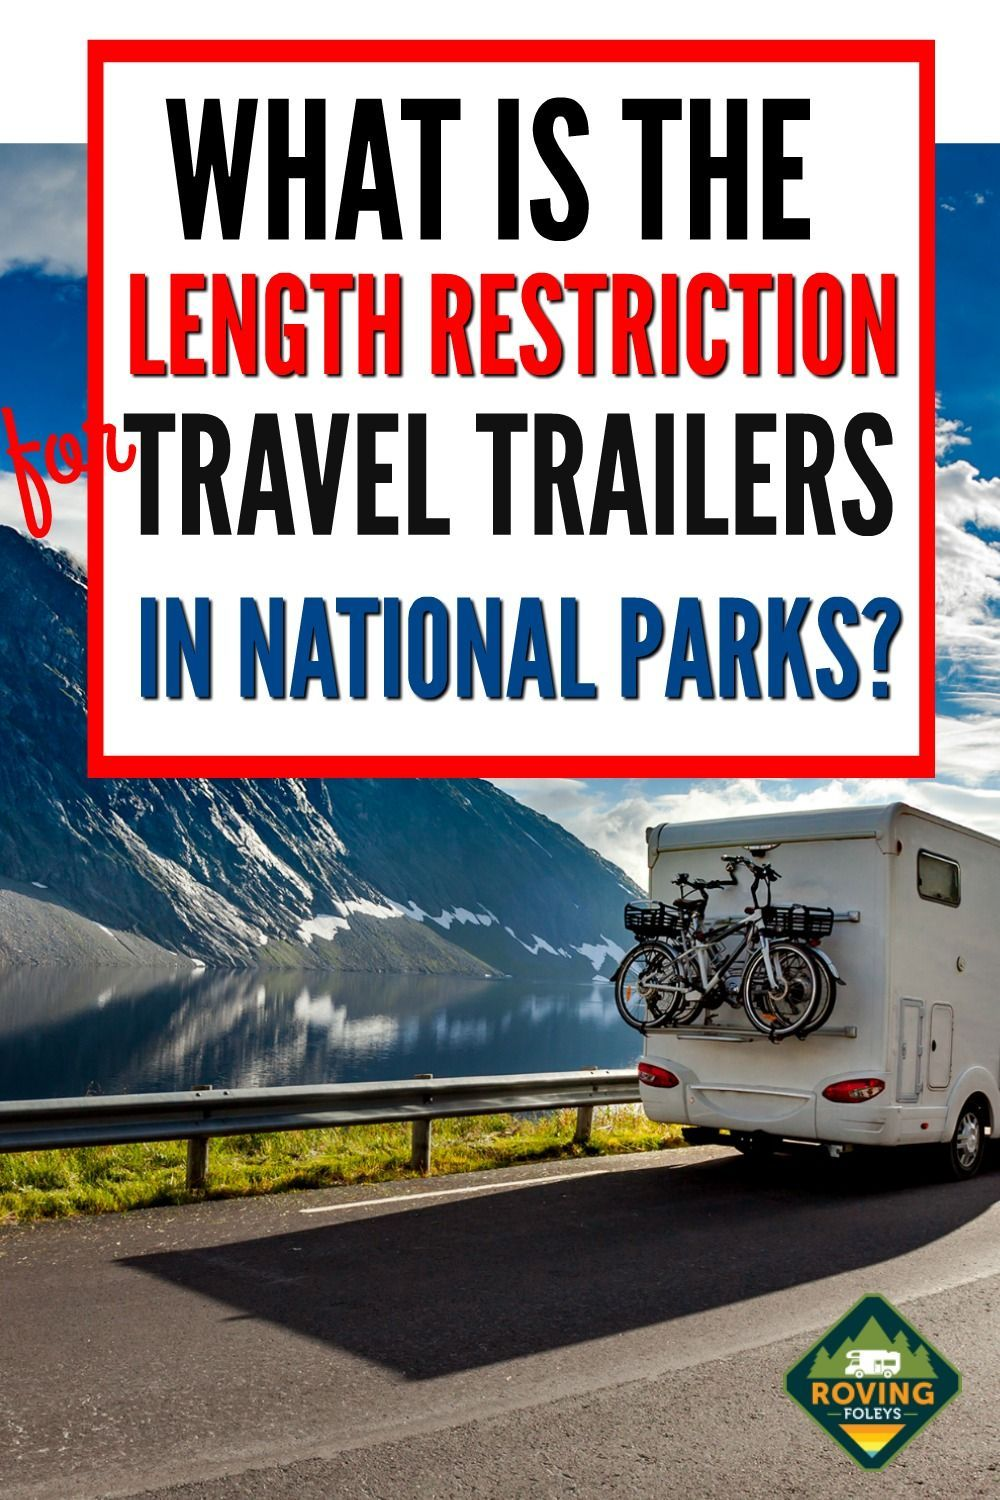 2020 Guide To National Parks Rv Length Every Campground In 2020 Road Trip Planning Rv Road Trip Road Trip Destinations